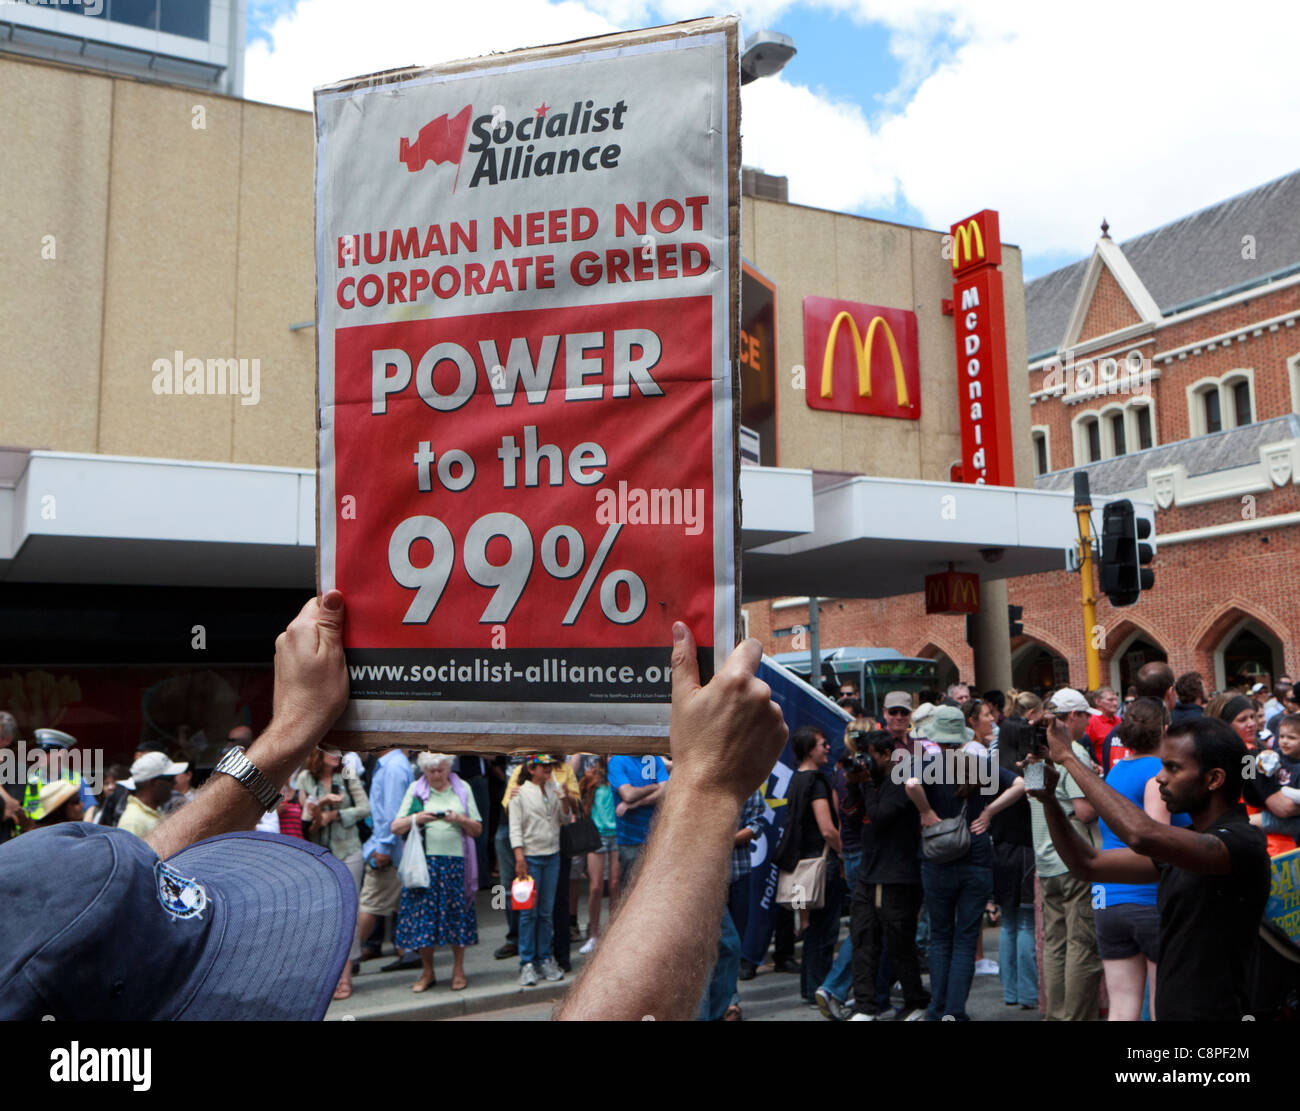 Protester holds a 'Human Need Not Corporate Greed' Banner next to a Macdonald's sign. - Stock Image